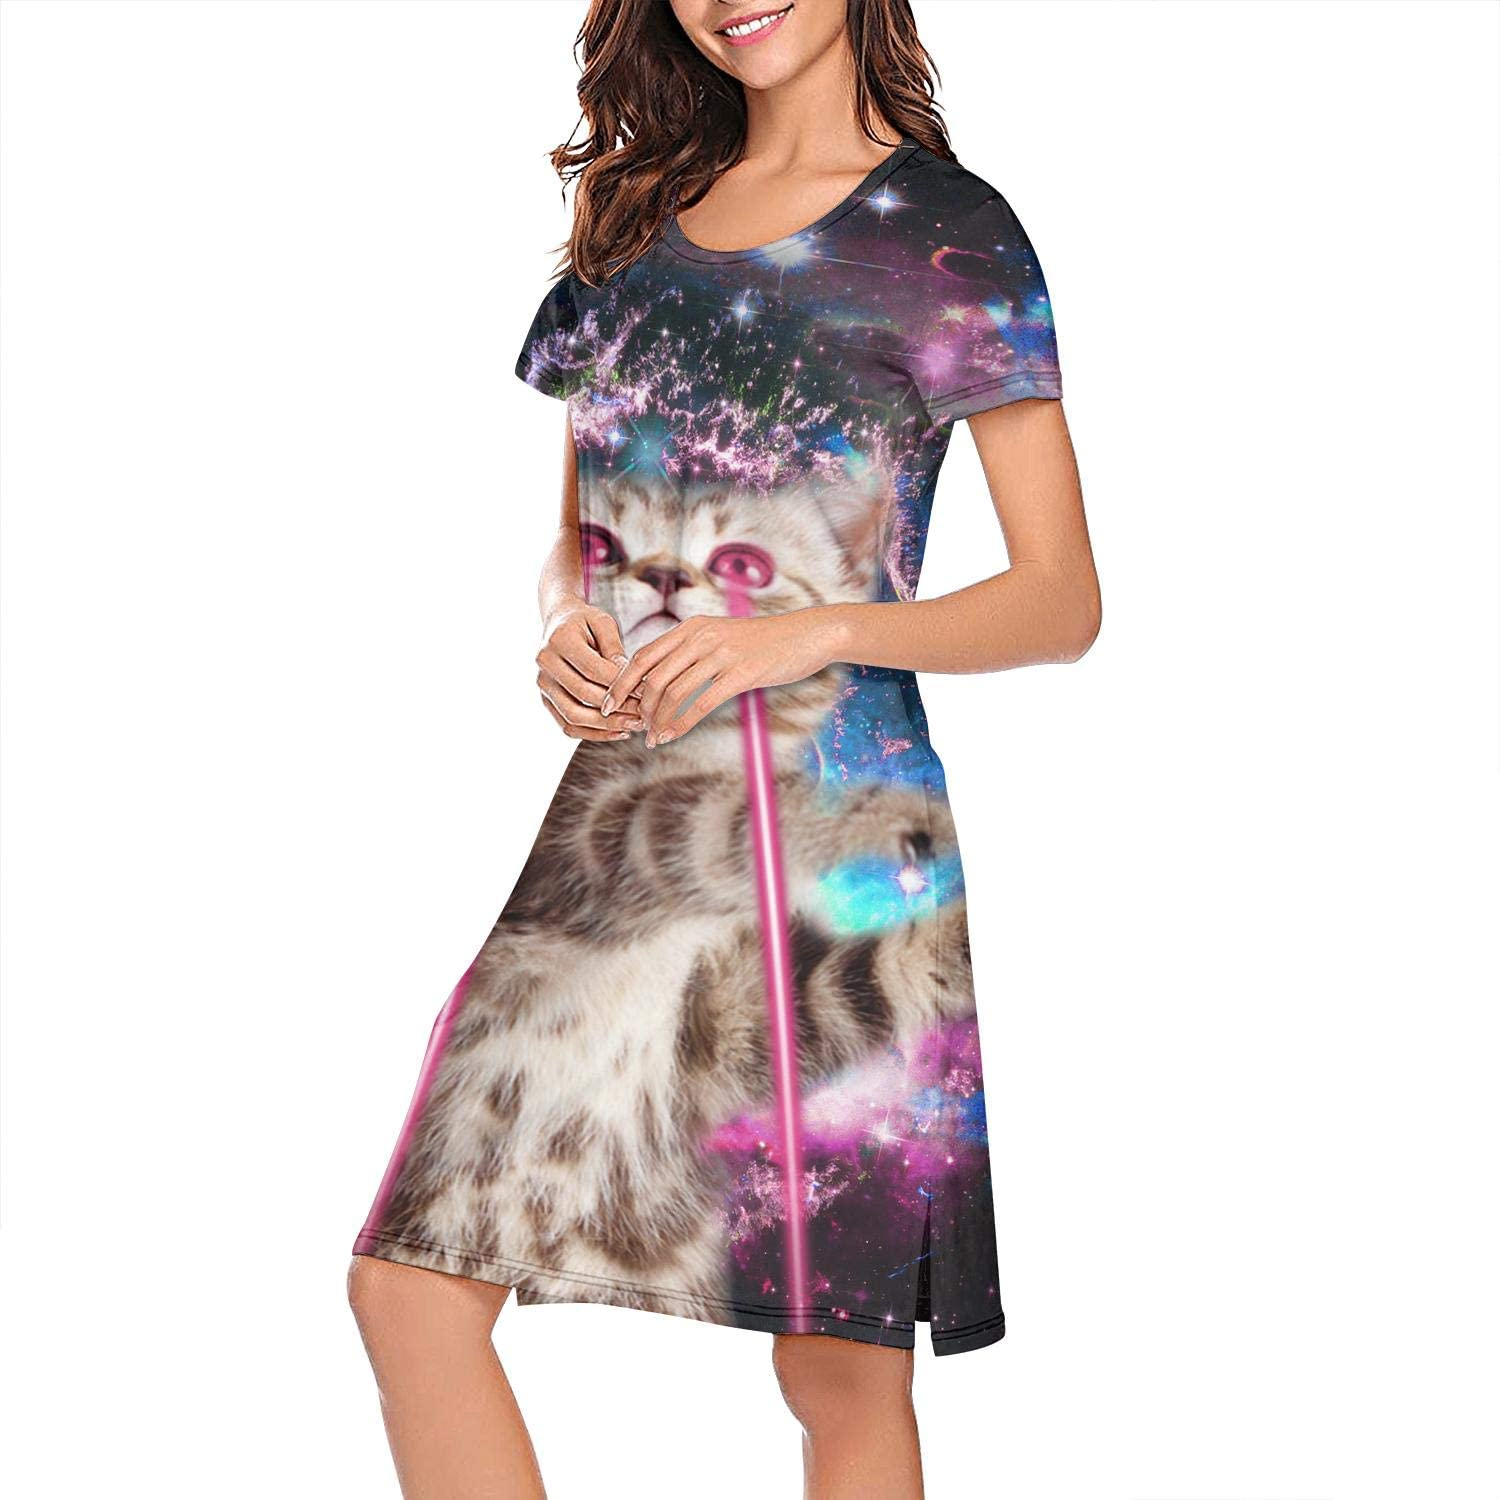 ZWEN Women's Bengal Cat Universe Laser Nightgown Classic Nightshirt Breathable Sleeping Gown